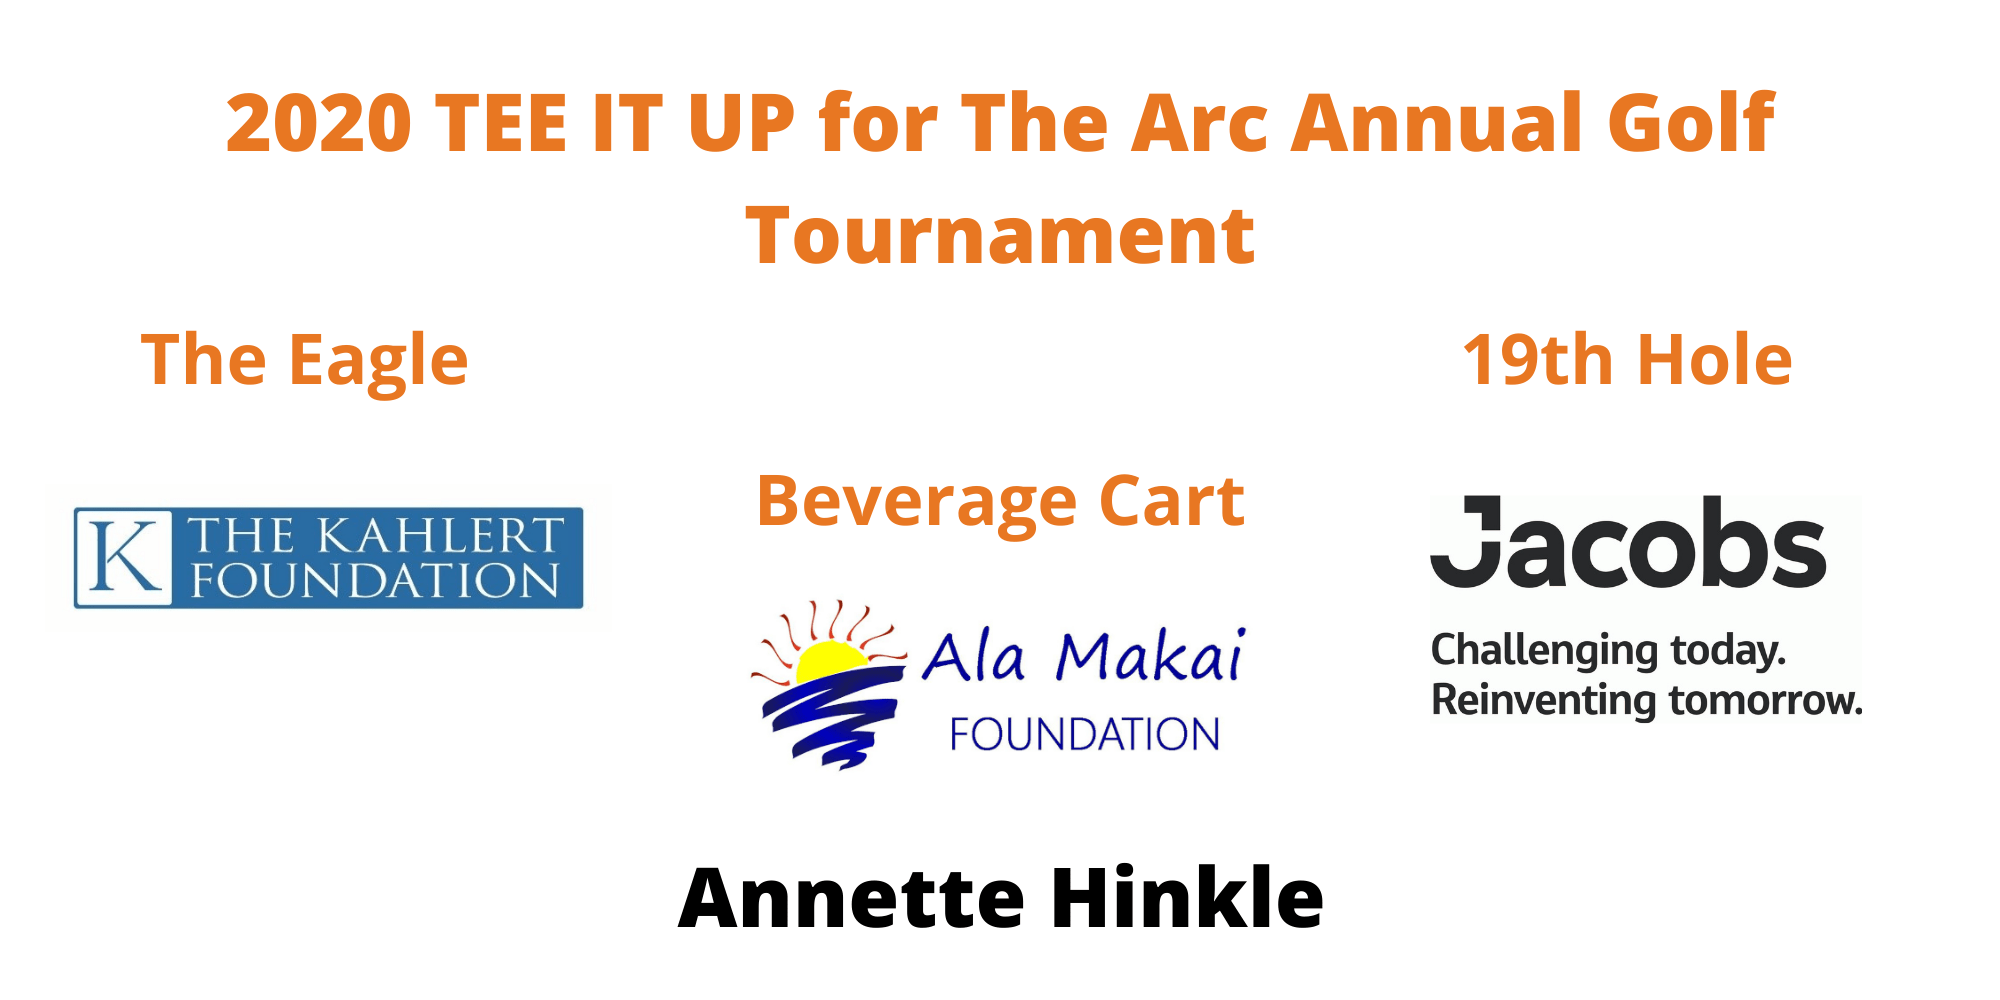 The Kahlert Foundation is The Eagle Sponsor, Ala Makai Foundation and Annette Hinkle are the Beverage Sponsors, and Jacobs is the 19th Hole Sponsor